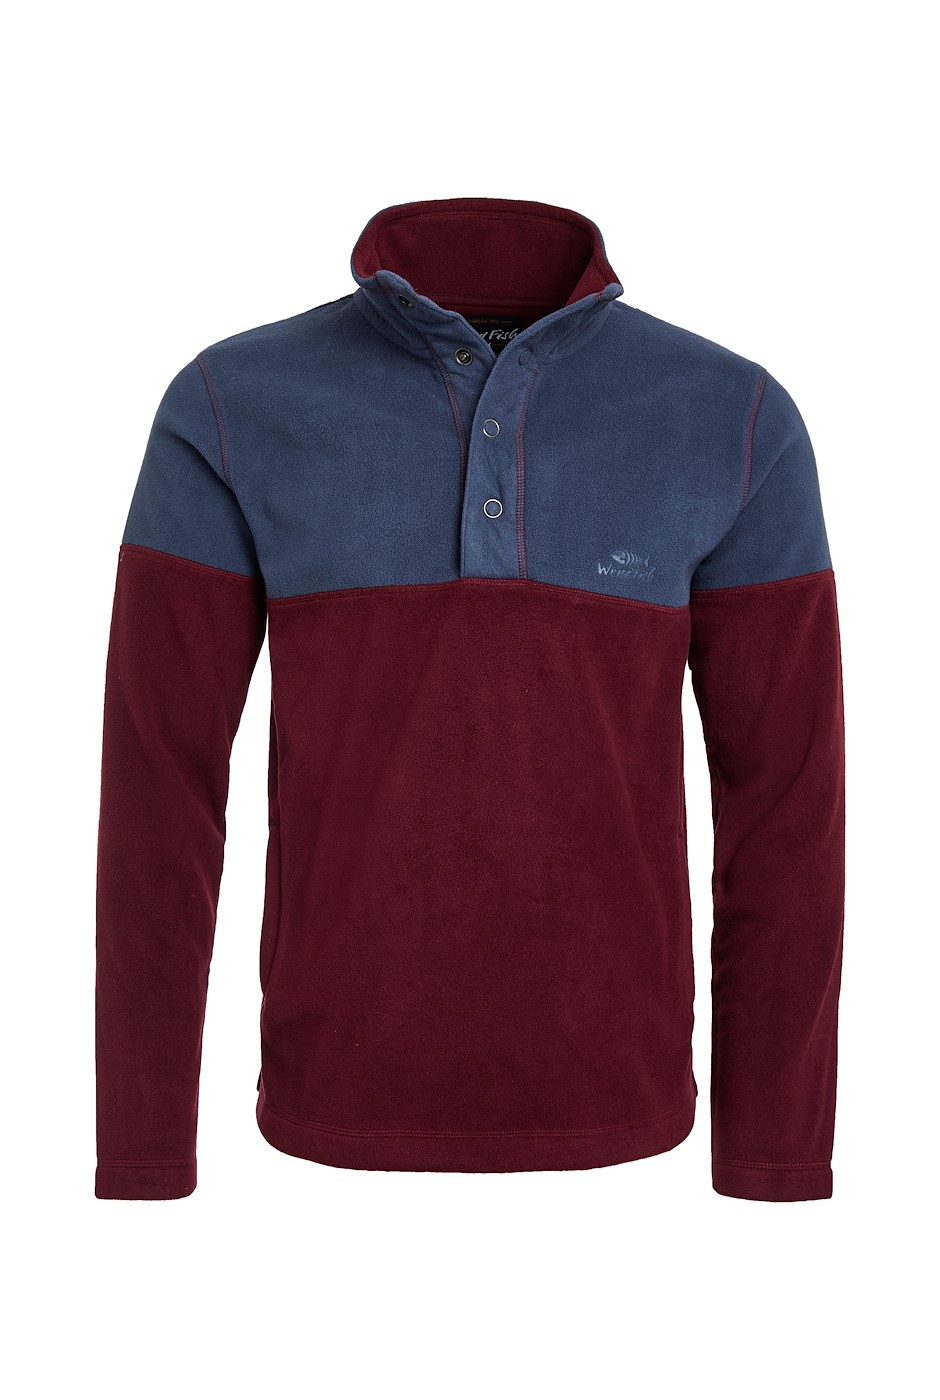 Denzel Recycled Embossed Microfleece Antique Cherry